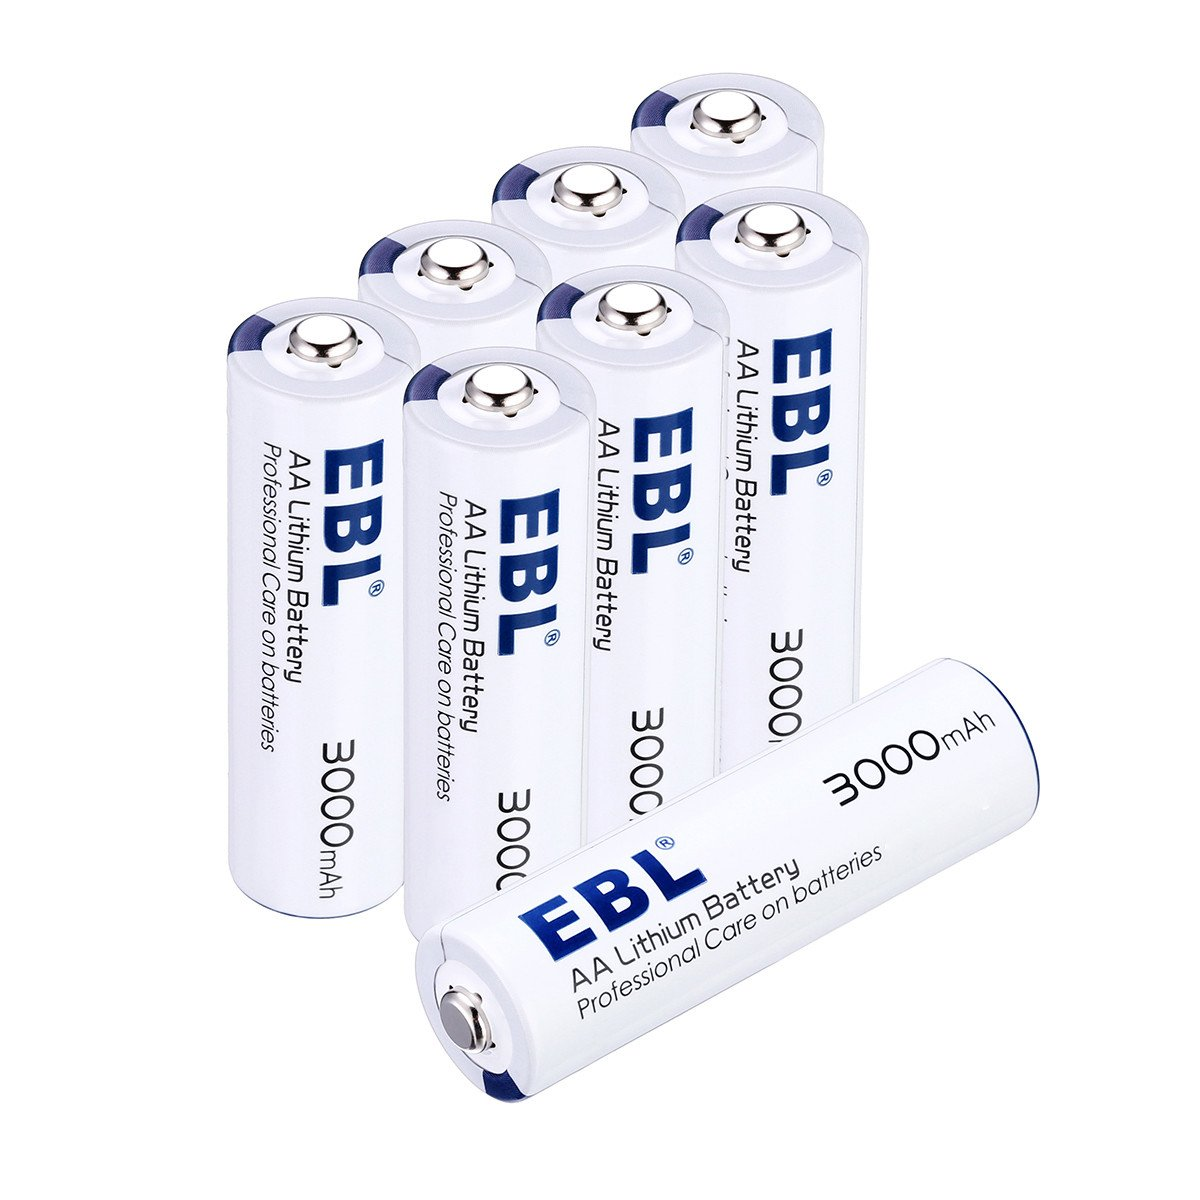 AA Batteries Non-rechargeable